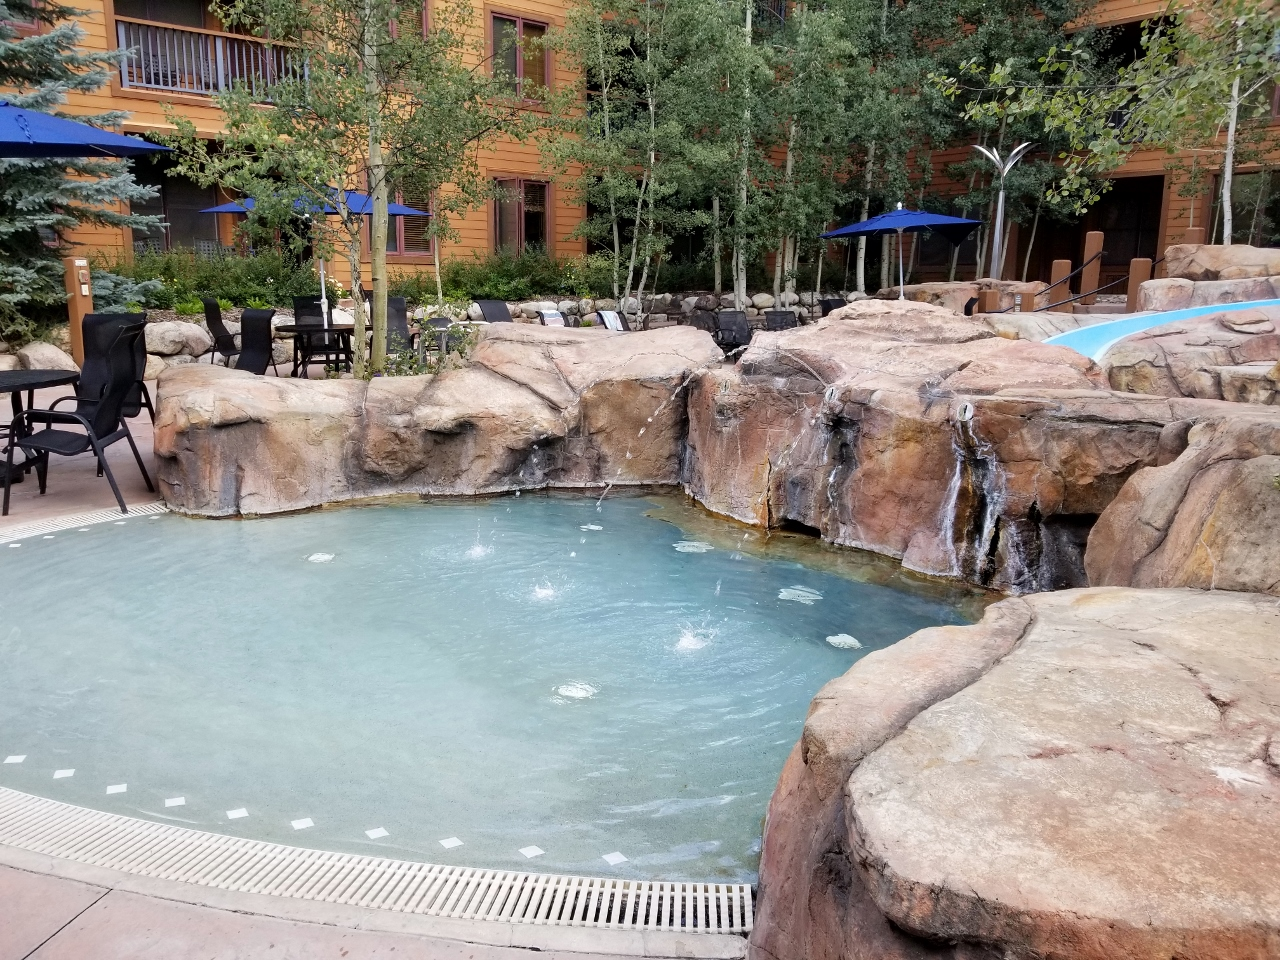 The kiddie pool at the springs at Keystone